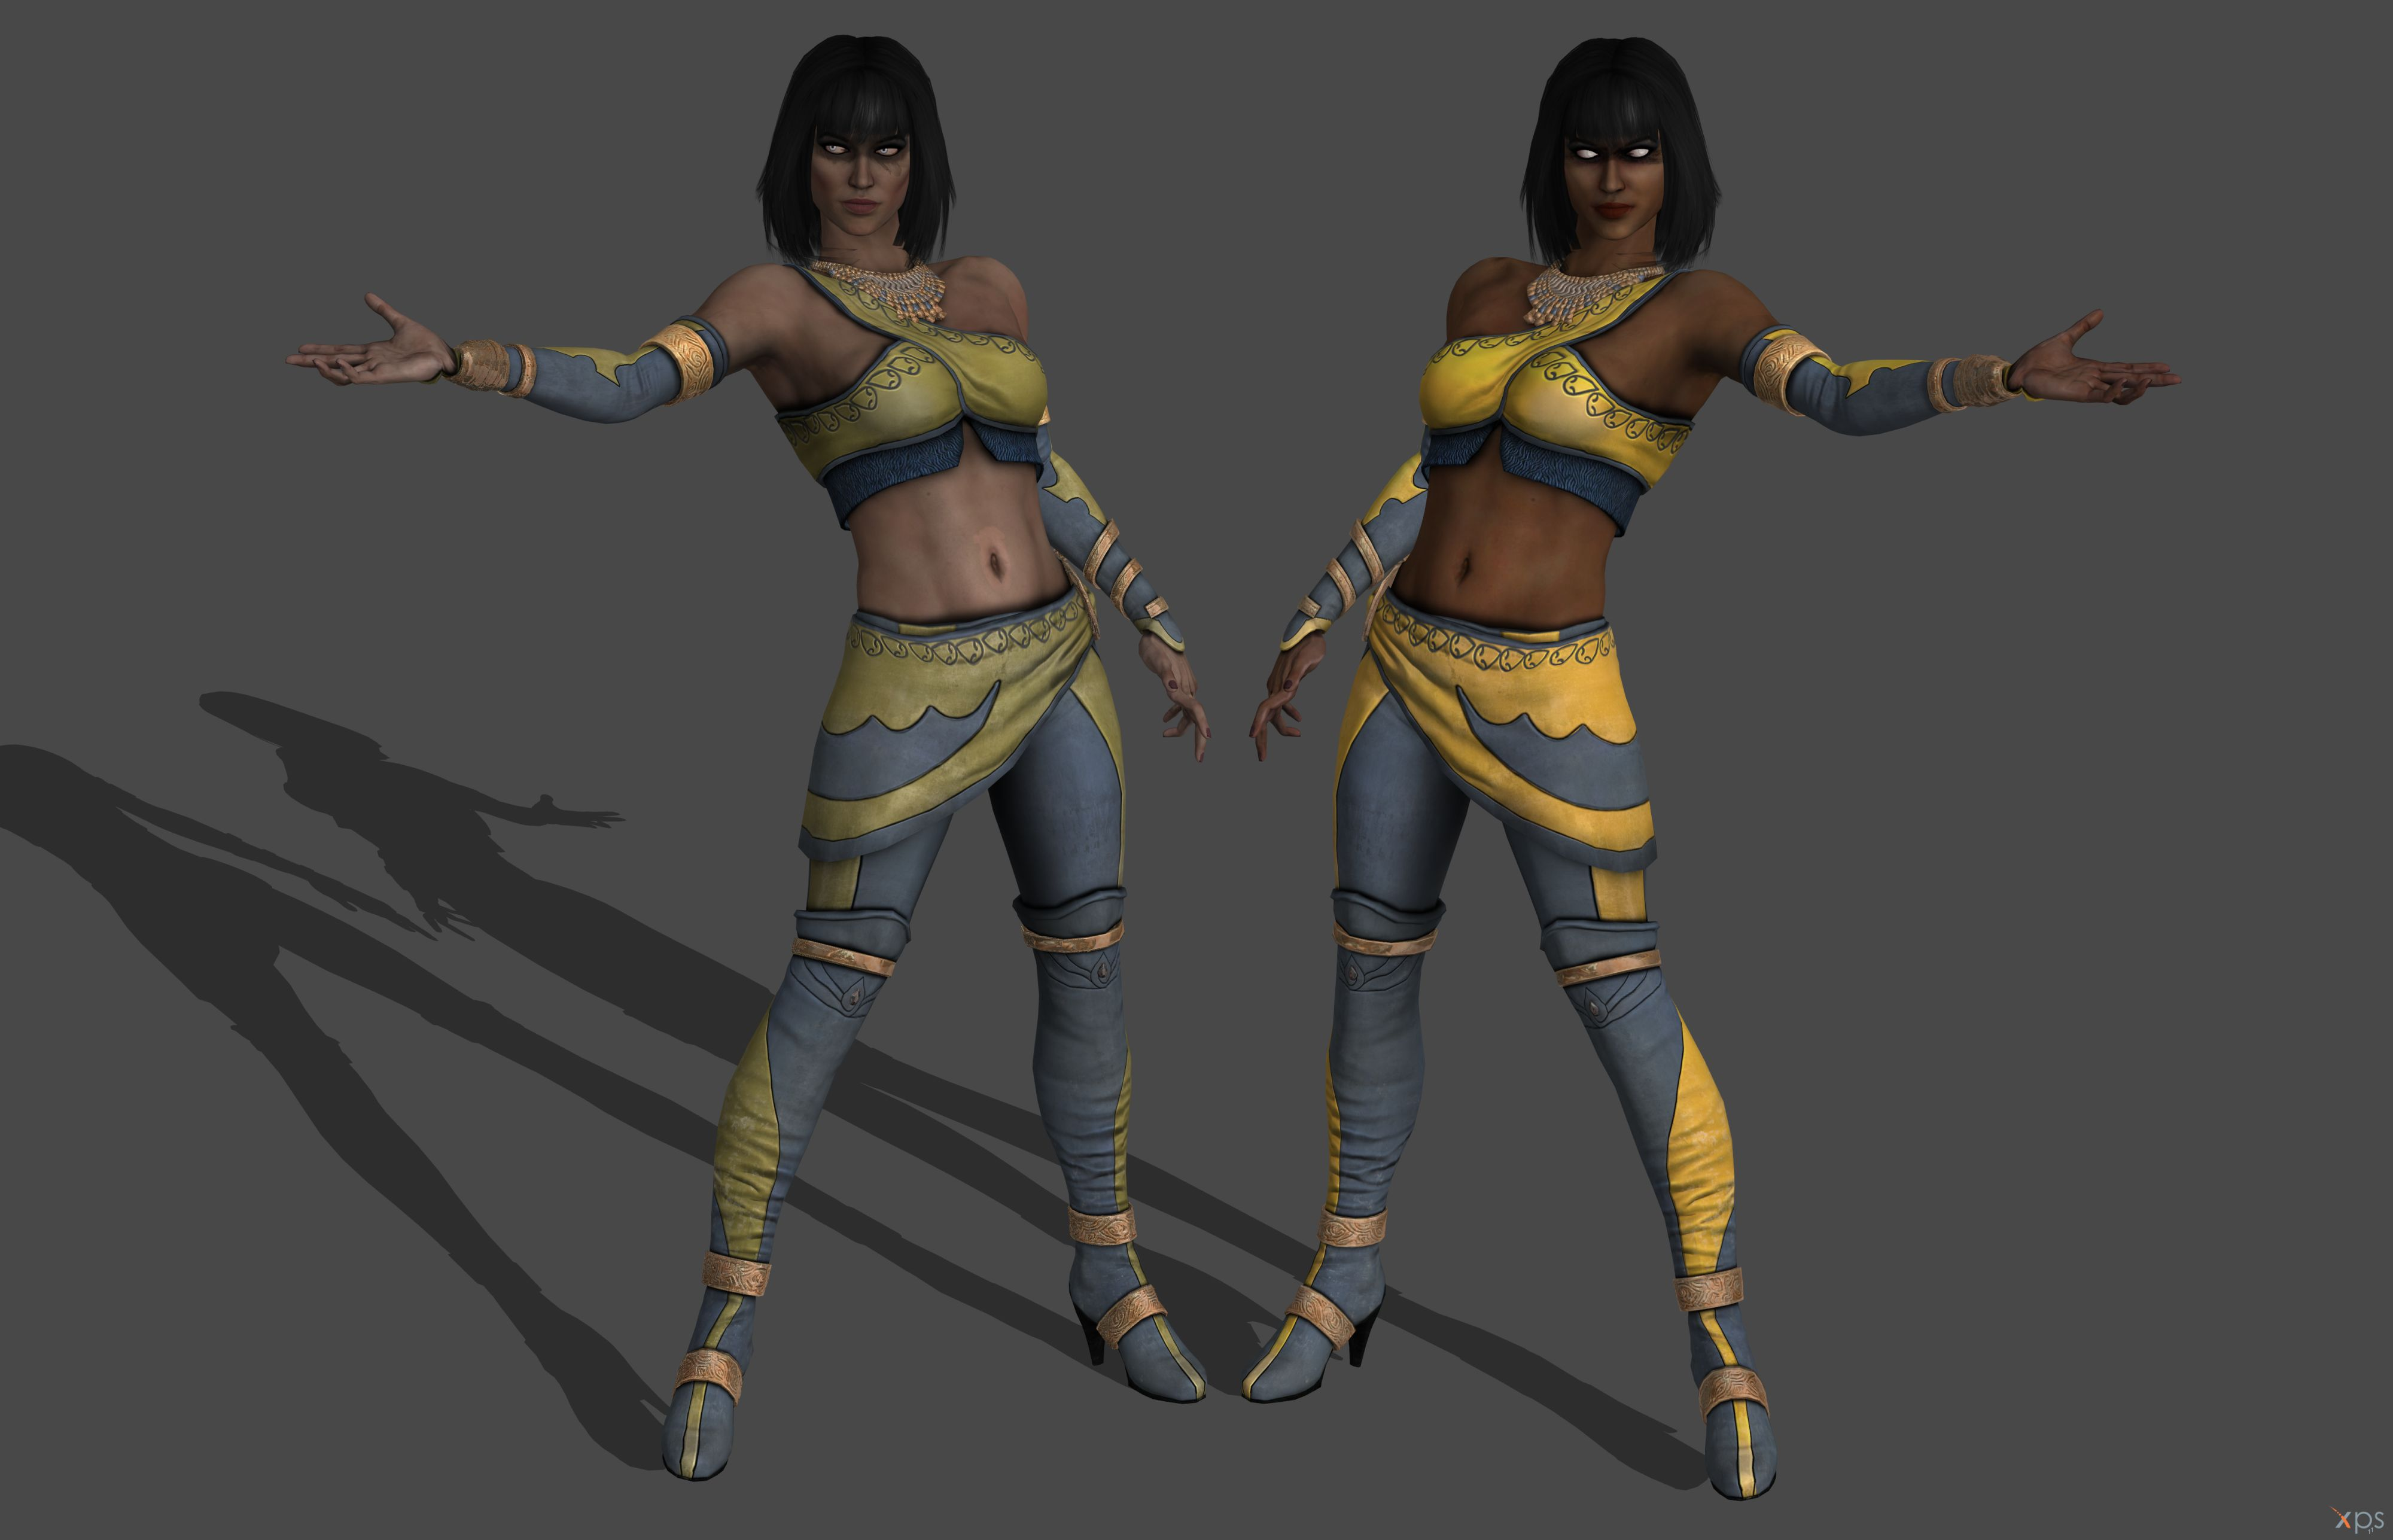 Mortal Kombat Xl Tanya Story Mode Xps Only By Lezisell On